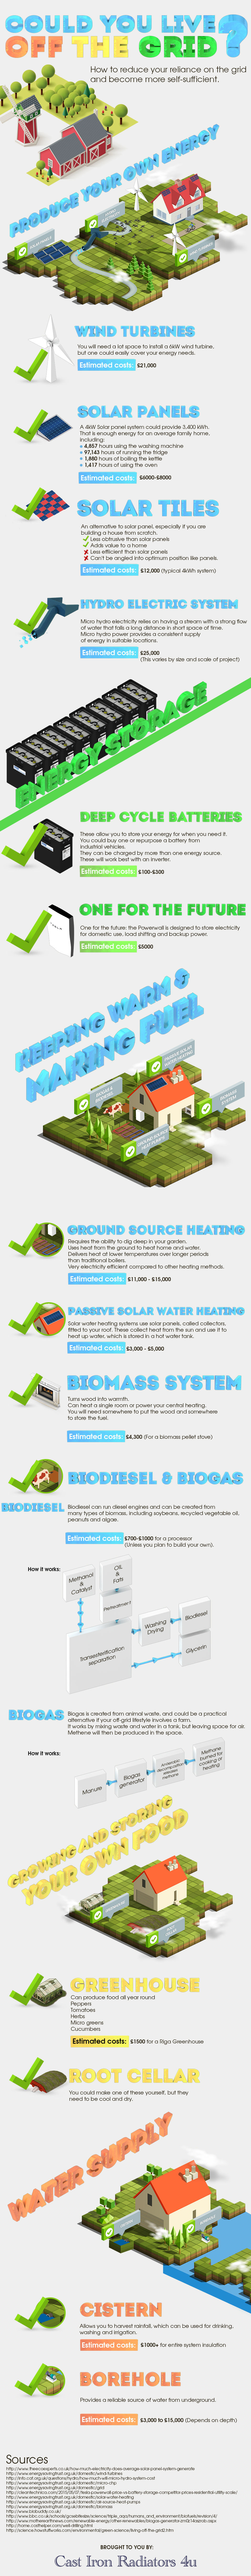 infographic could you live off the grid